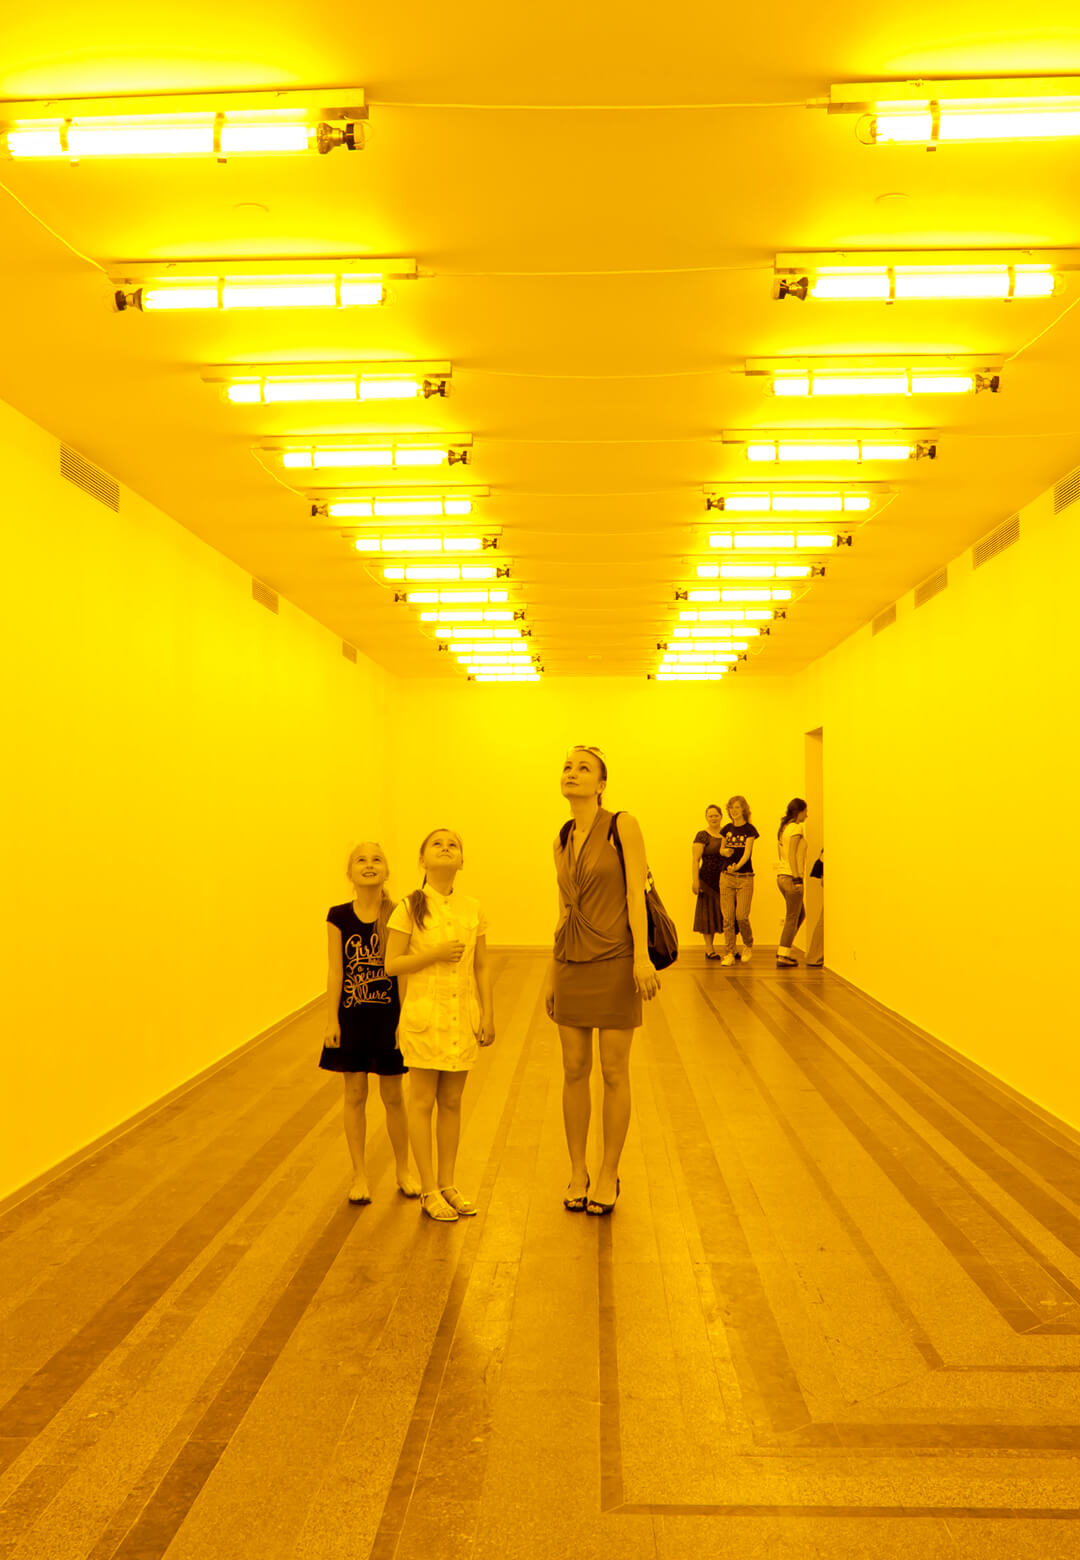 Room for one colour, an installation by Olafur Eliasson at the Tate Modern | Olafur Eliasson | 10 trends in 10 years | STIRworld